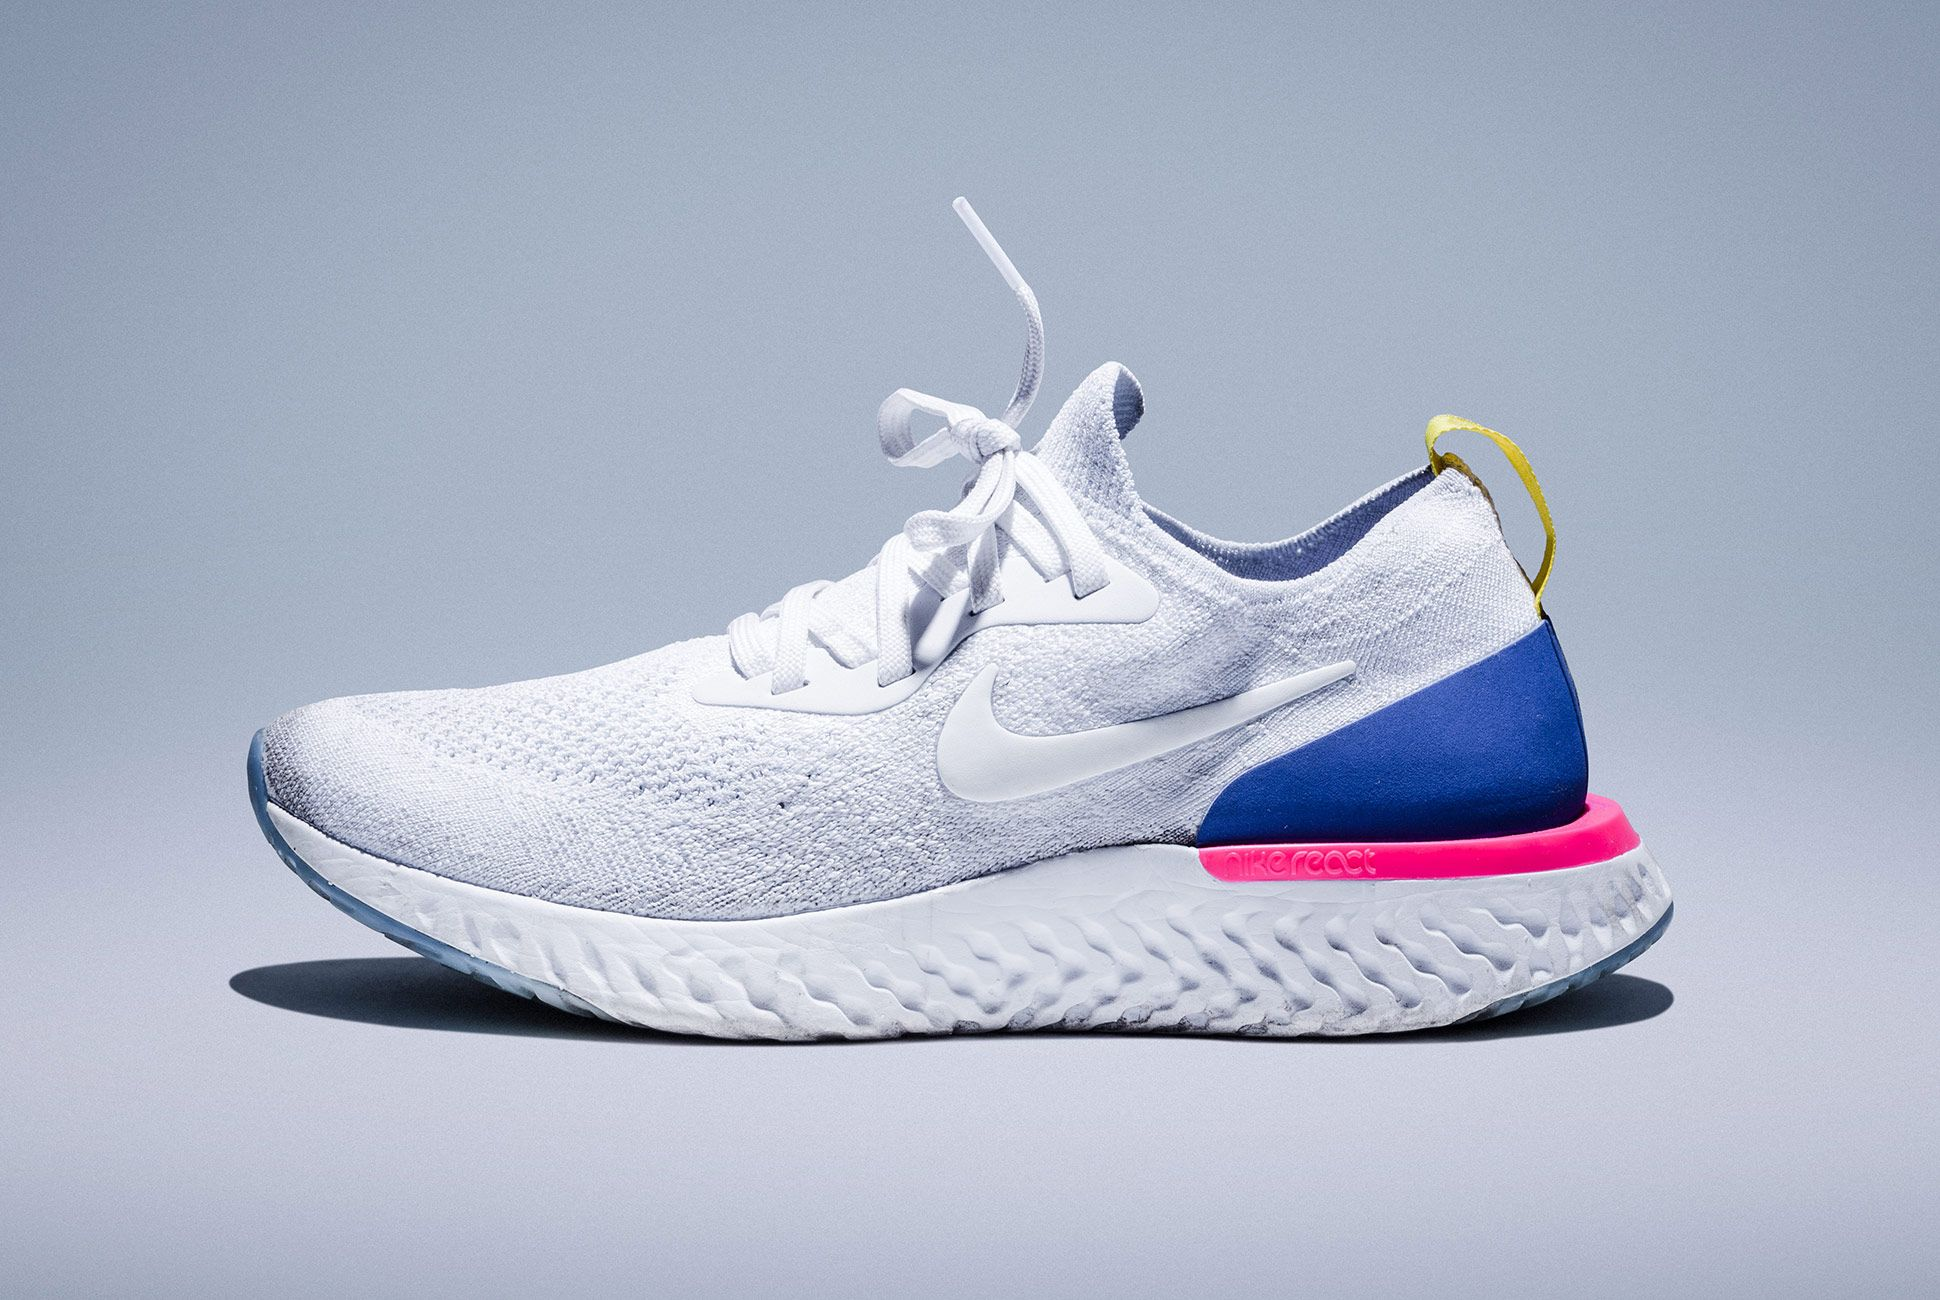 Nike Epic React Review: Worth All the Hype?